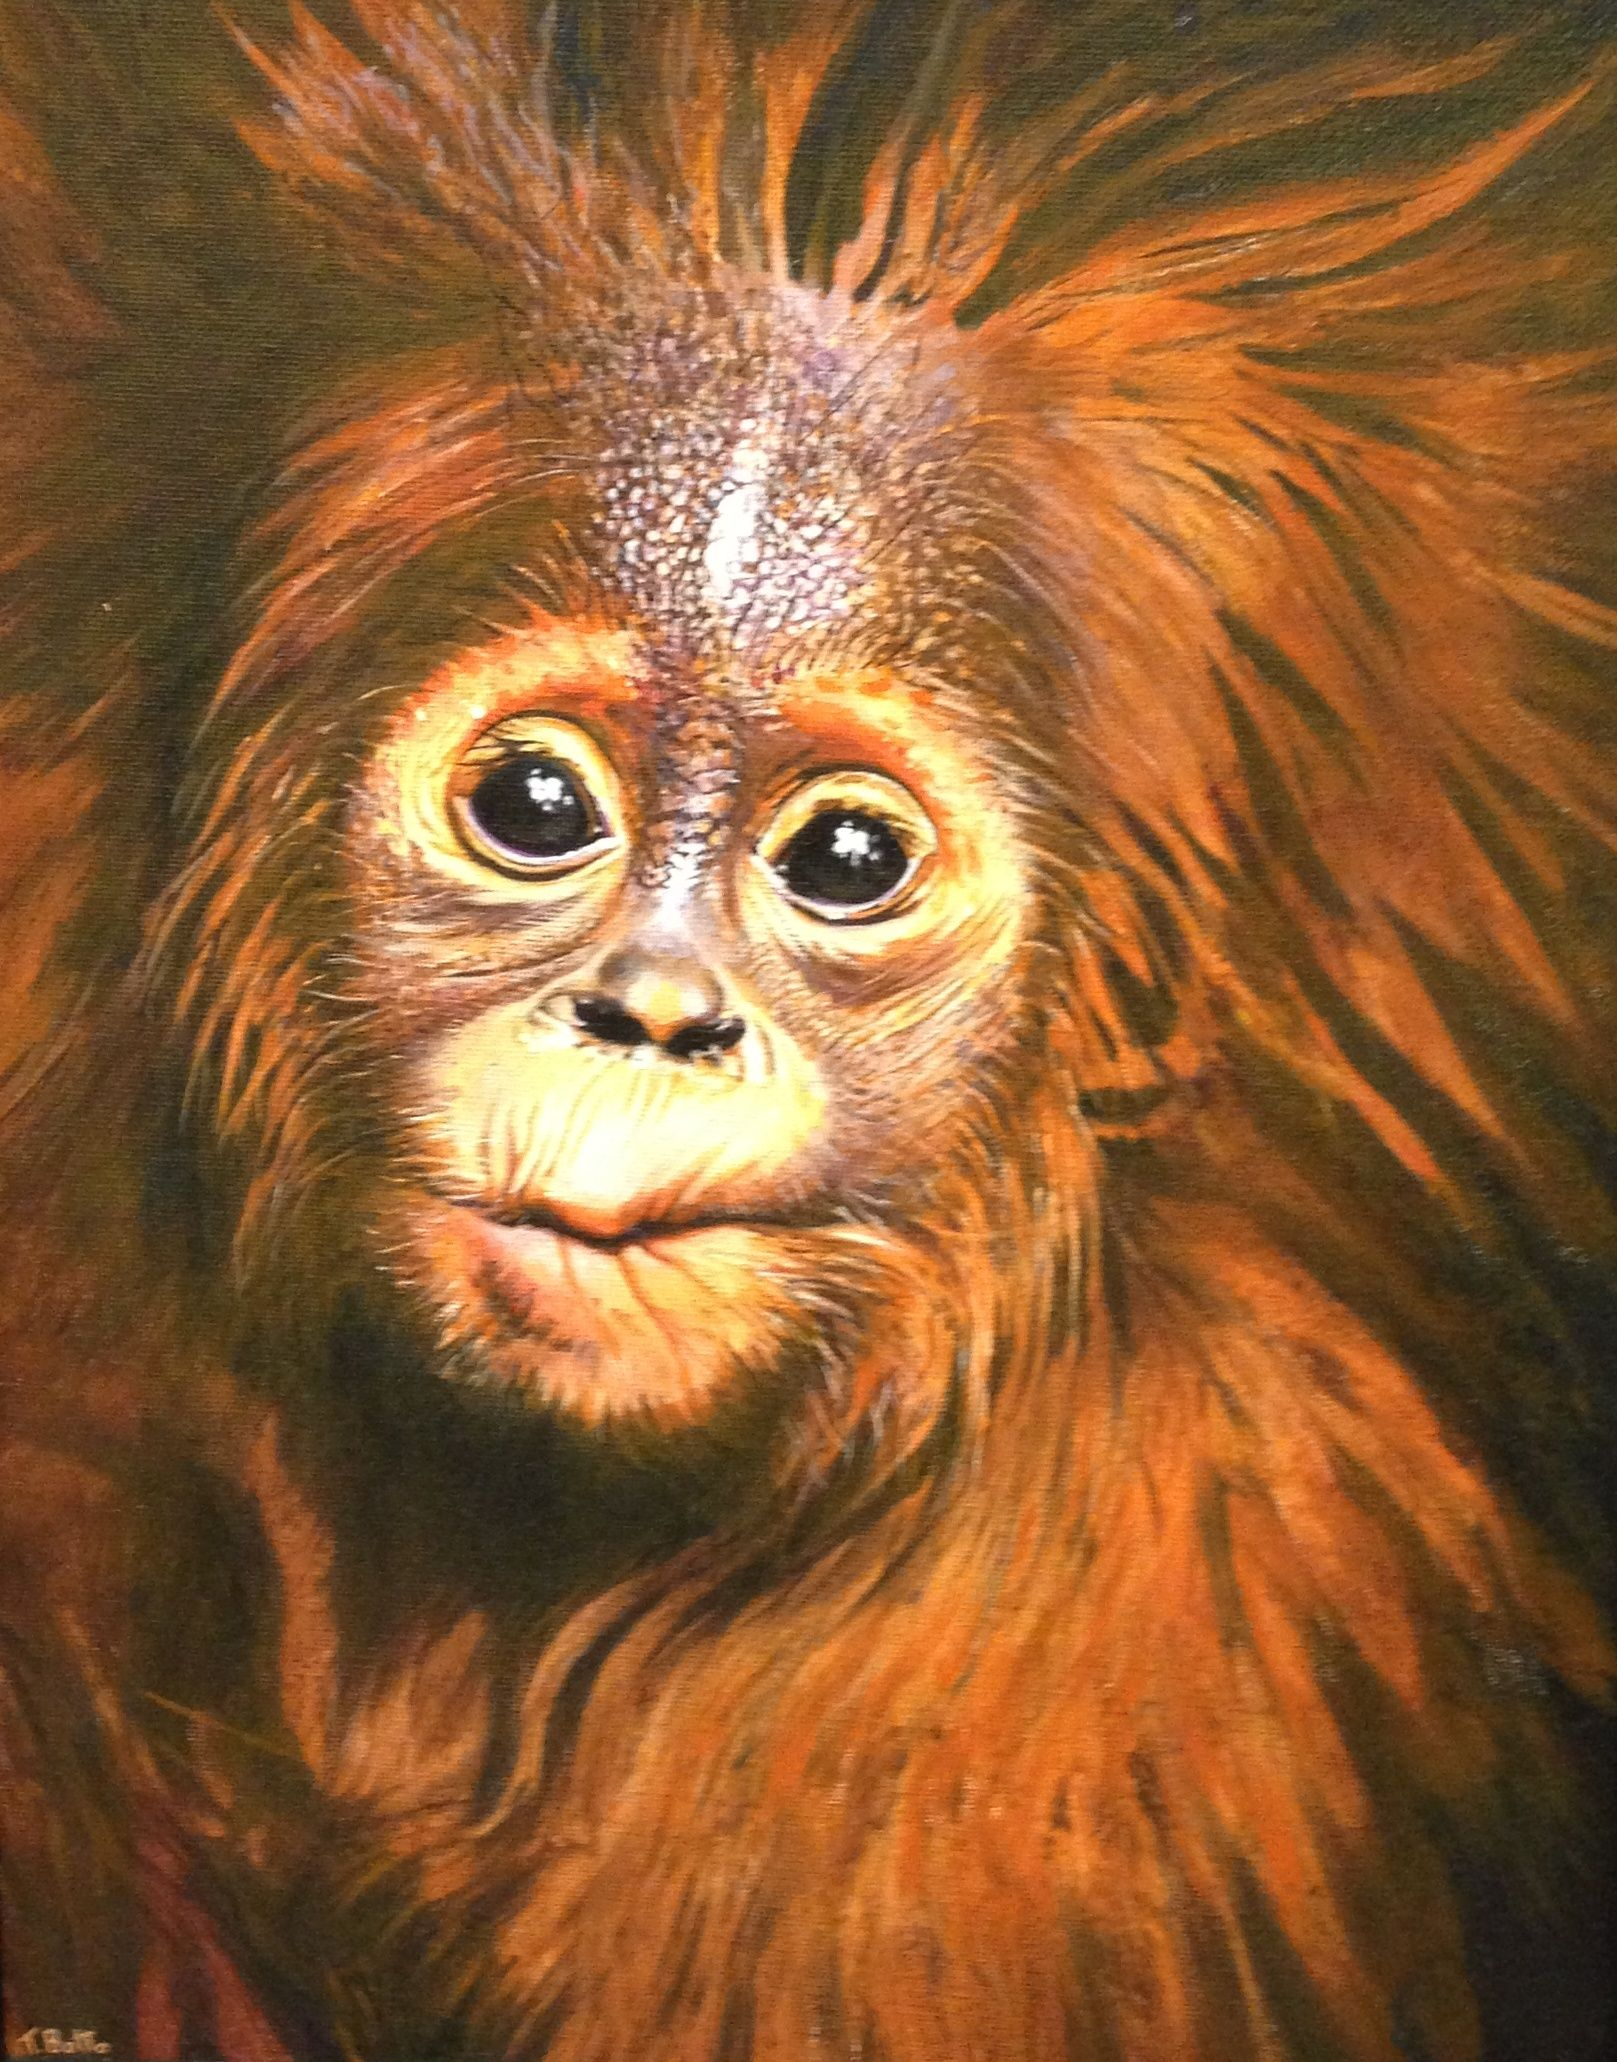 Baby Orangutan, acrylic by Tony Botto